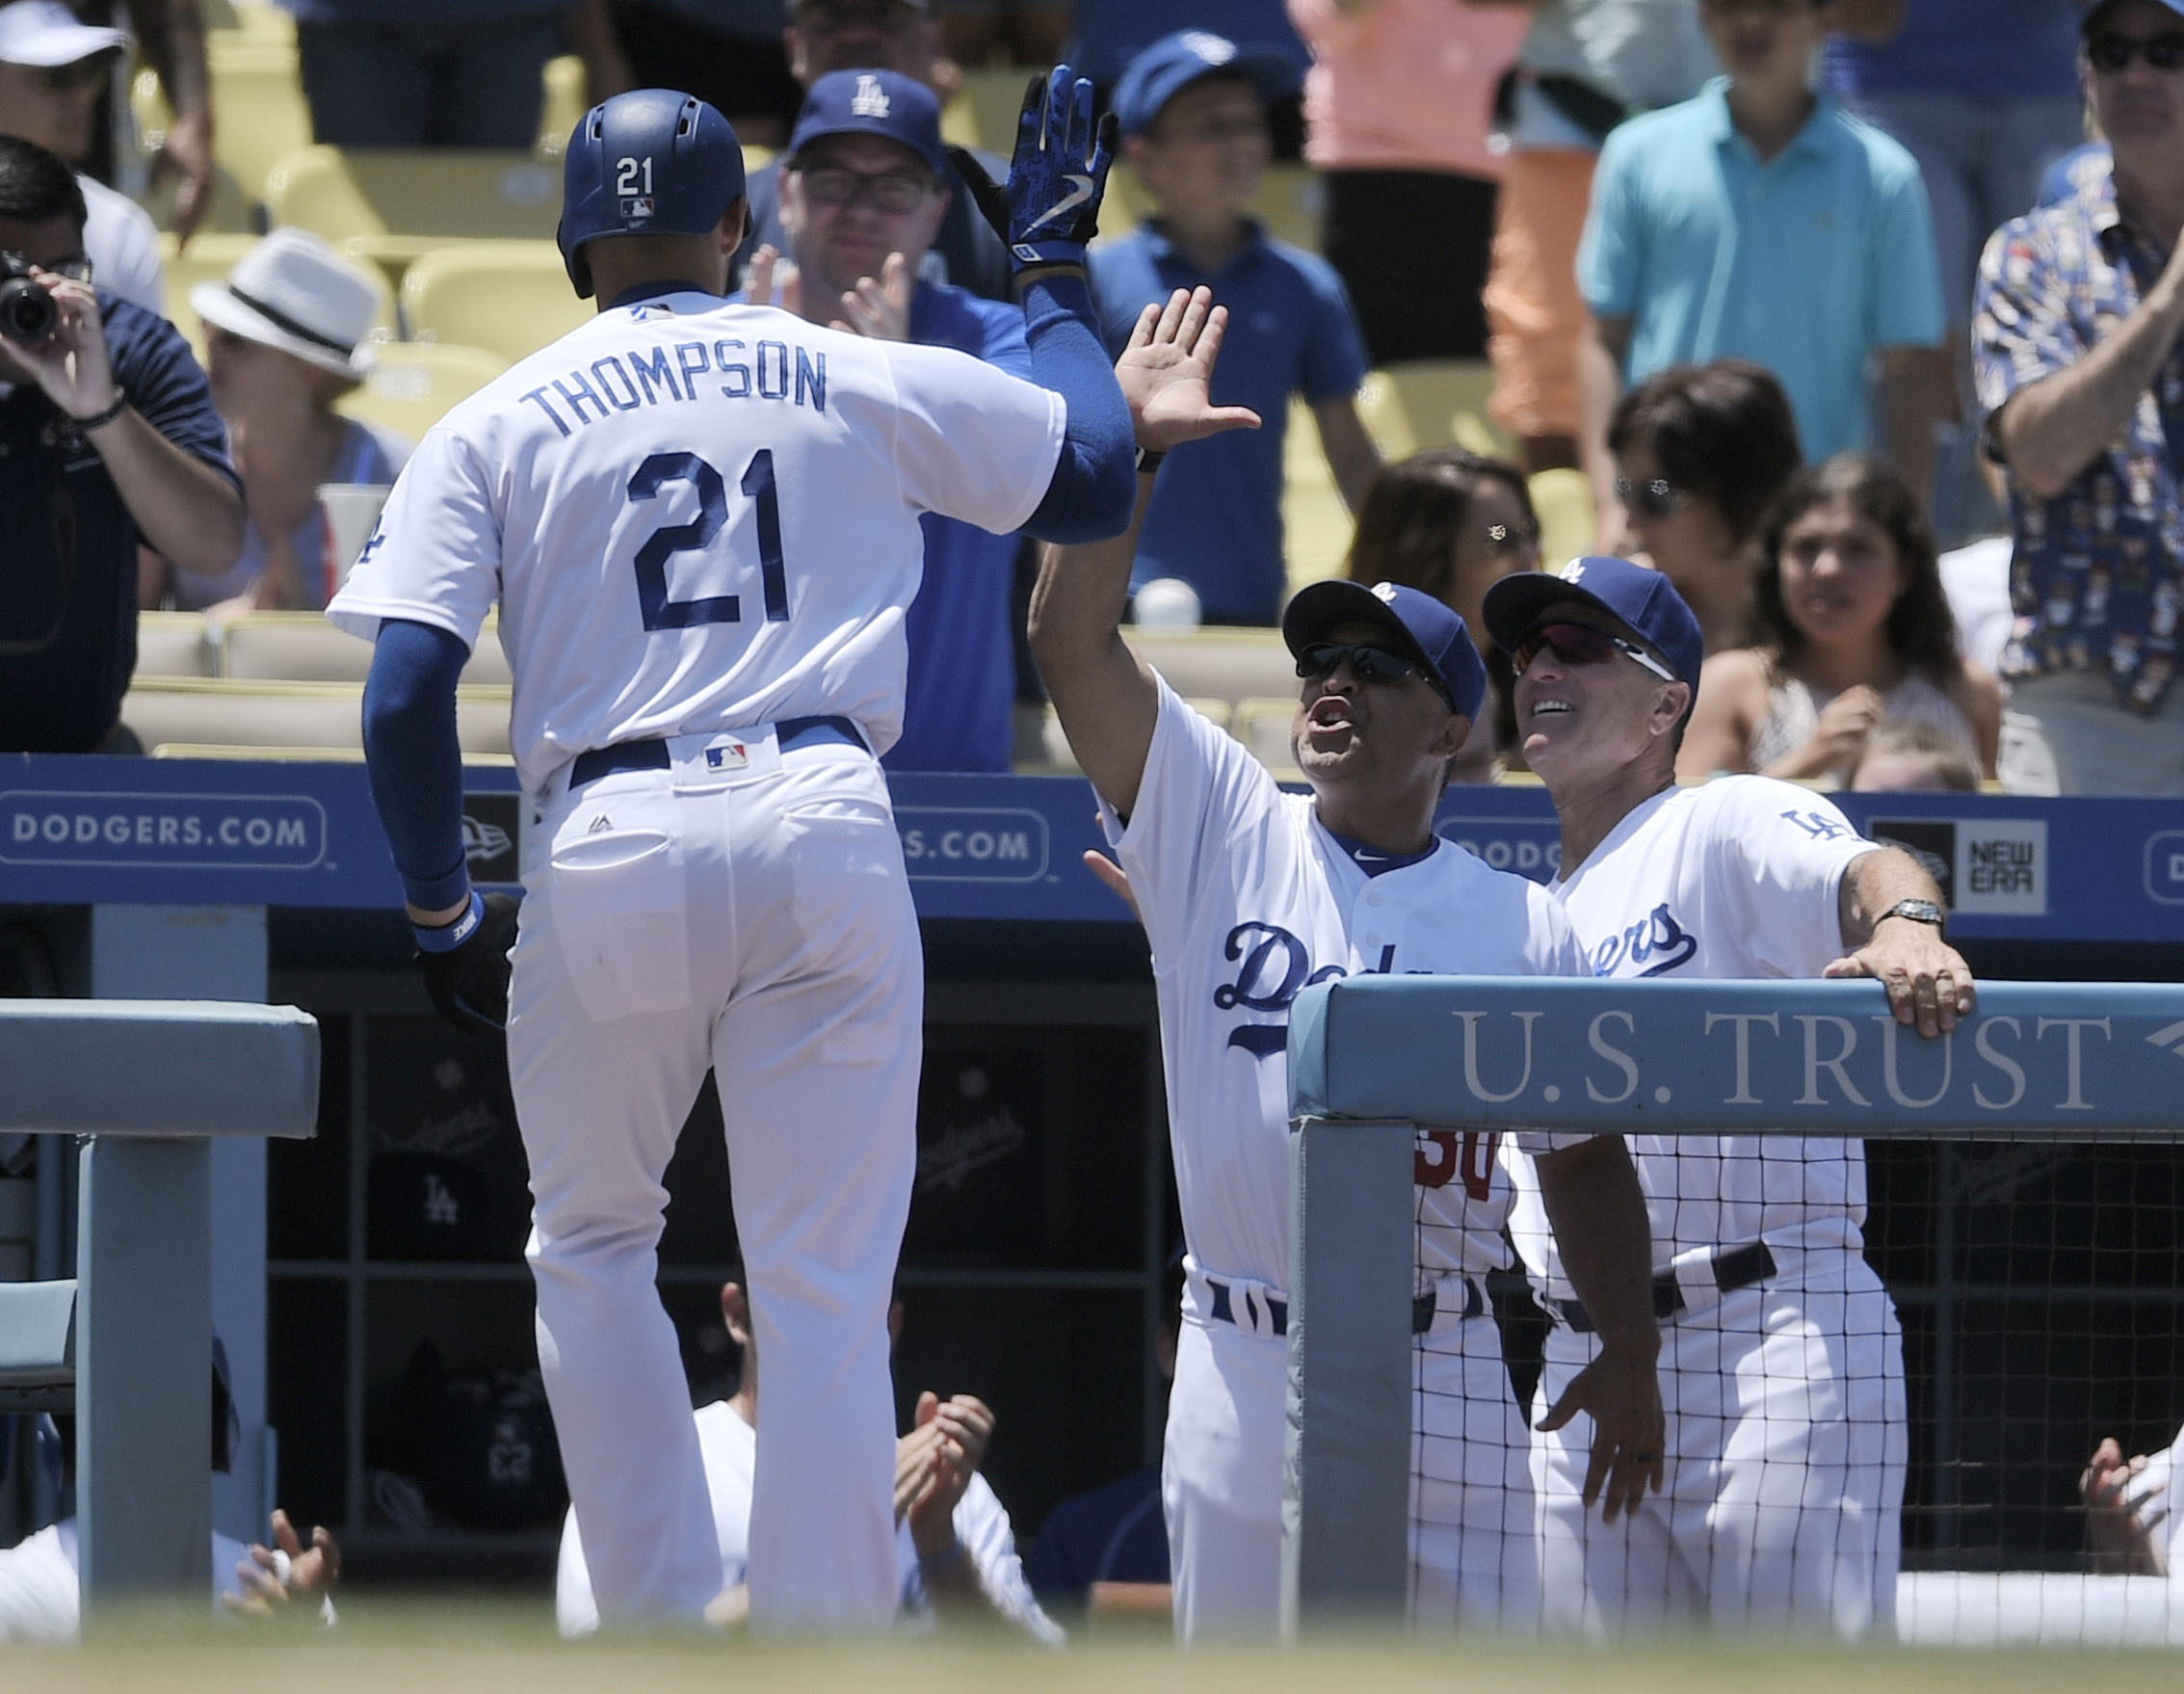 Los Angeles Dodgers' Trayce Thompson, left, celebrates with manager Dave Roberts, center, after he scores off a solo home run as bench coach Bob Geren, right, looks during the second inning of a baseball game against the Colorado Rockies in Los Angeles, S